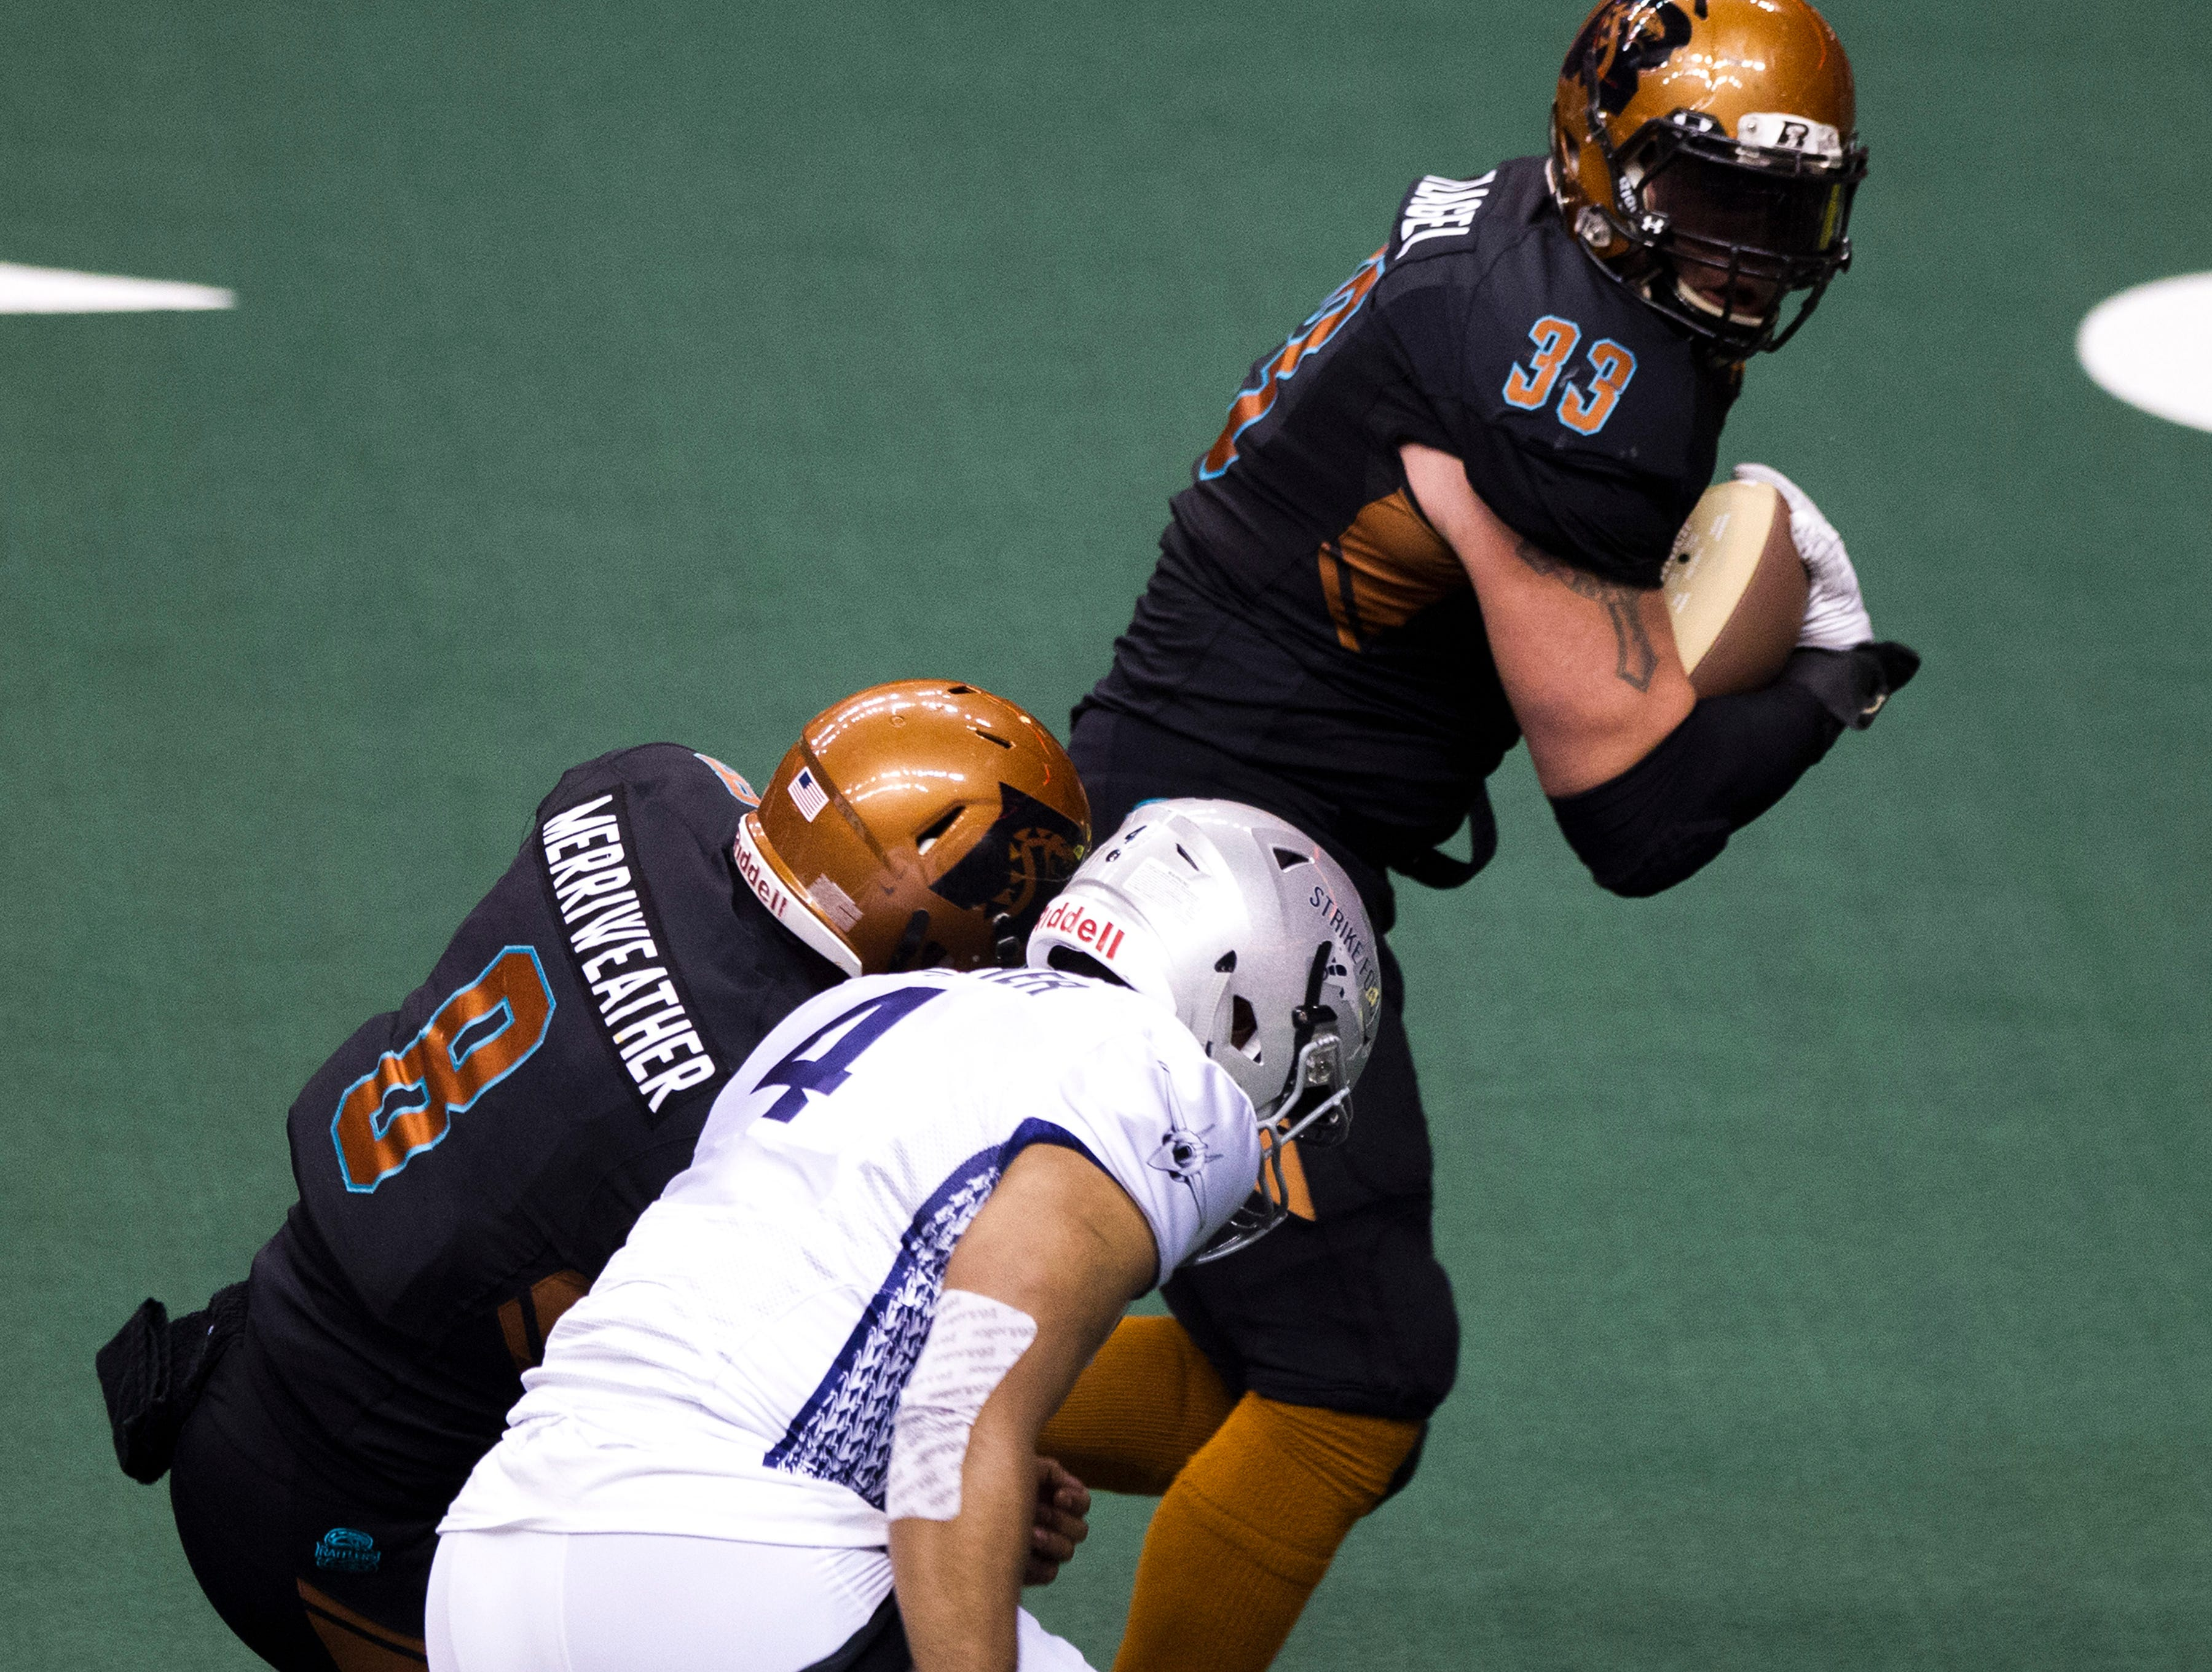 Arizona Rattlers' Connor Flagel (33) gets a block from Davontee Merriweather (8) as he runs in a fumble for a touchdown against San Diego Strike Force during the first half of their game at Talking Stick Resort Arena in Phoenix Friday, April. 6, 2019.